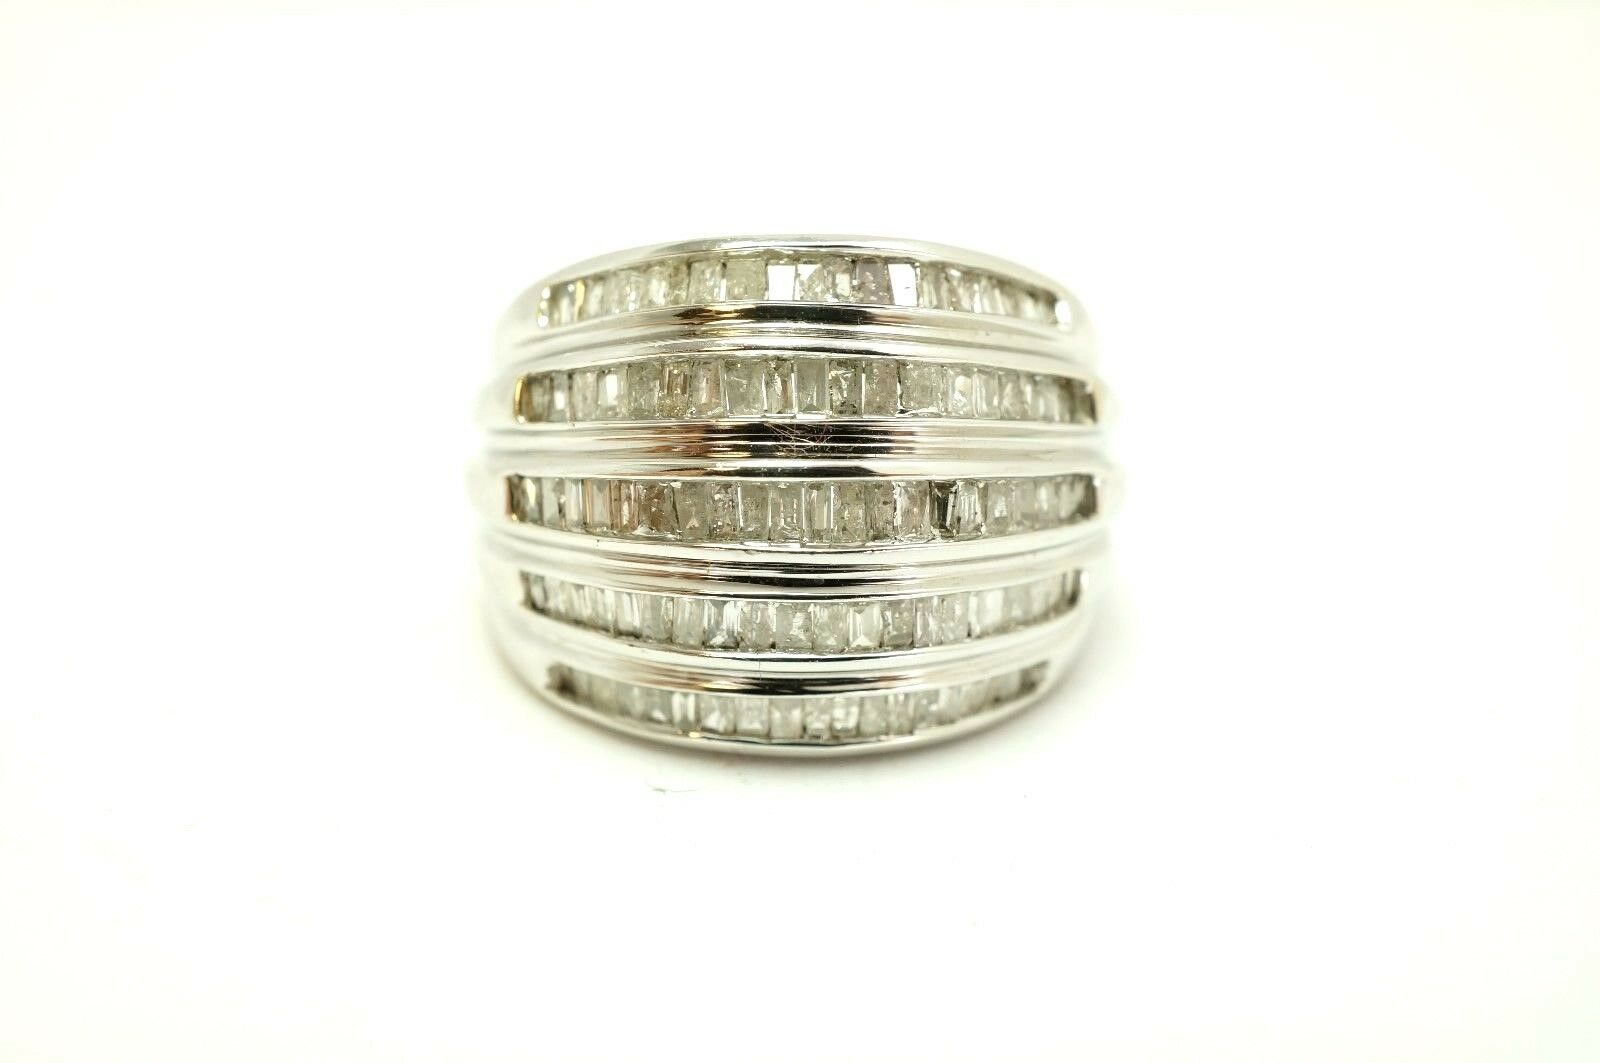 10k White gold 1 Carat tw Natural Diamond Channel Set Cluster Dome Ring Sz 7.25